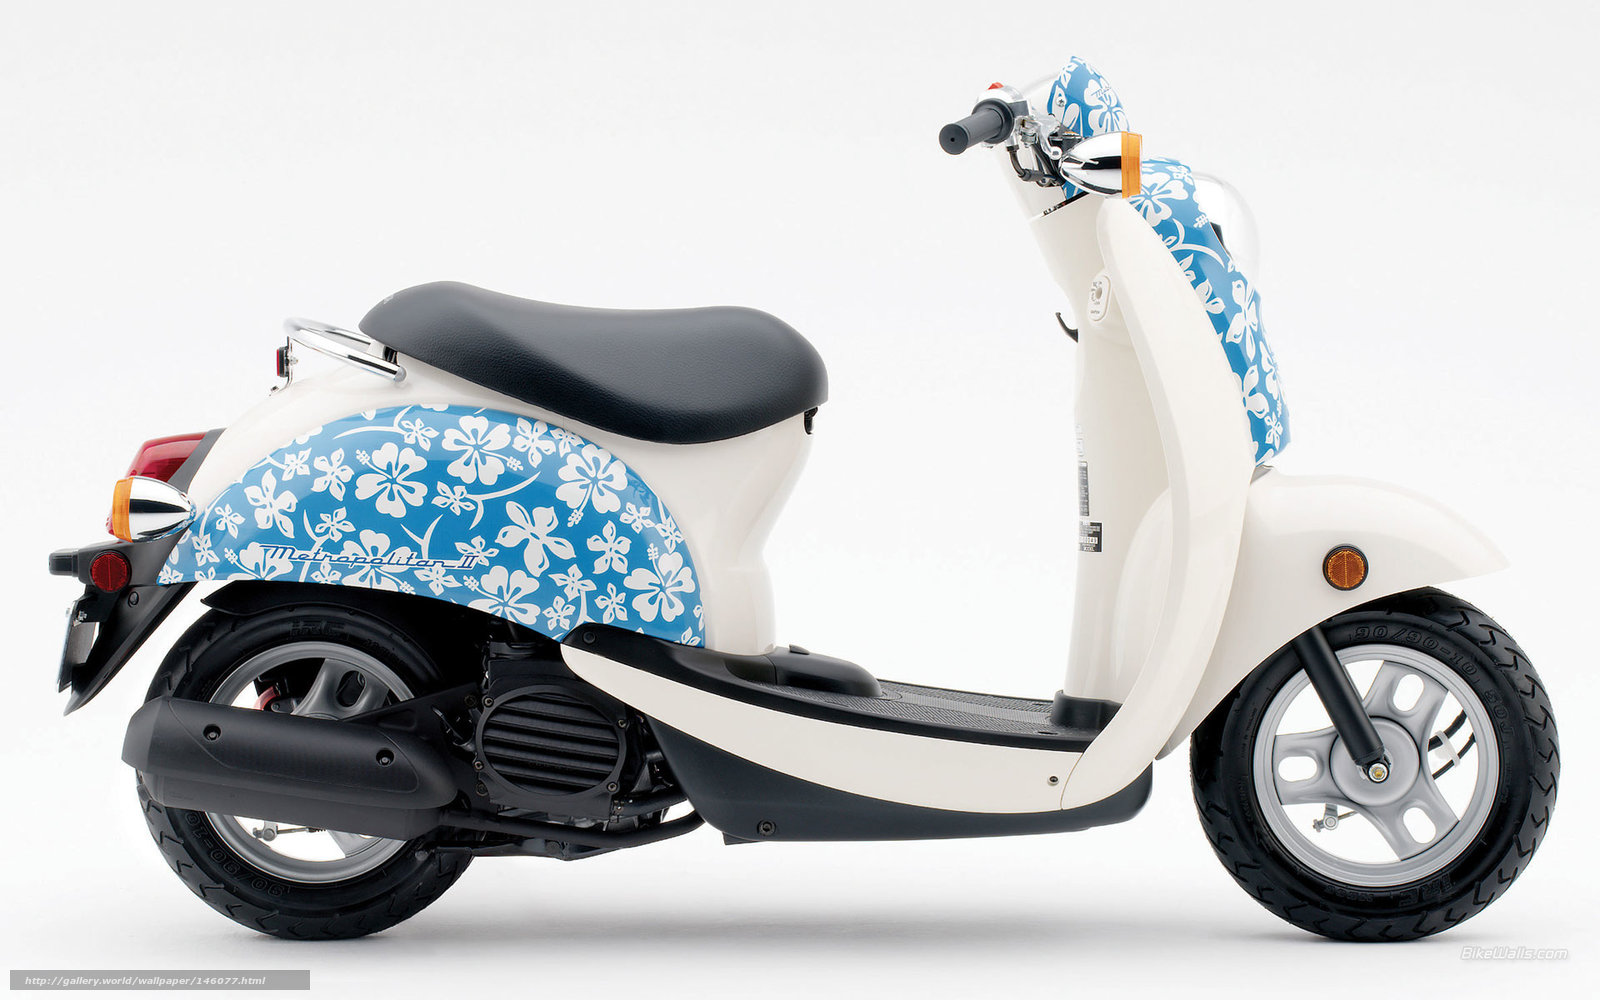 <b>Honda</b> Elite <b>Scooter</b> - Compra lotes baratos de <b>Honda</b> Elite <b>Scooter</b> ...